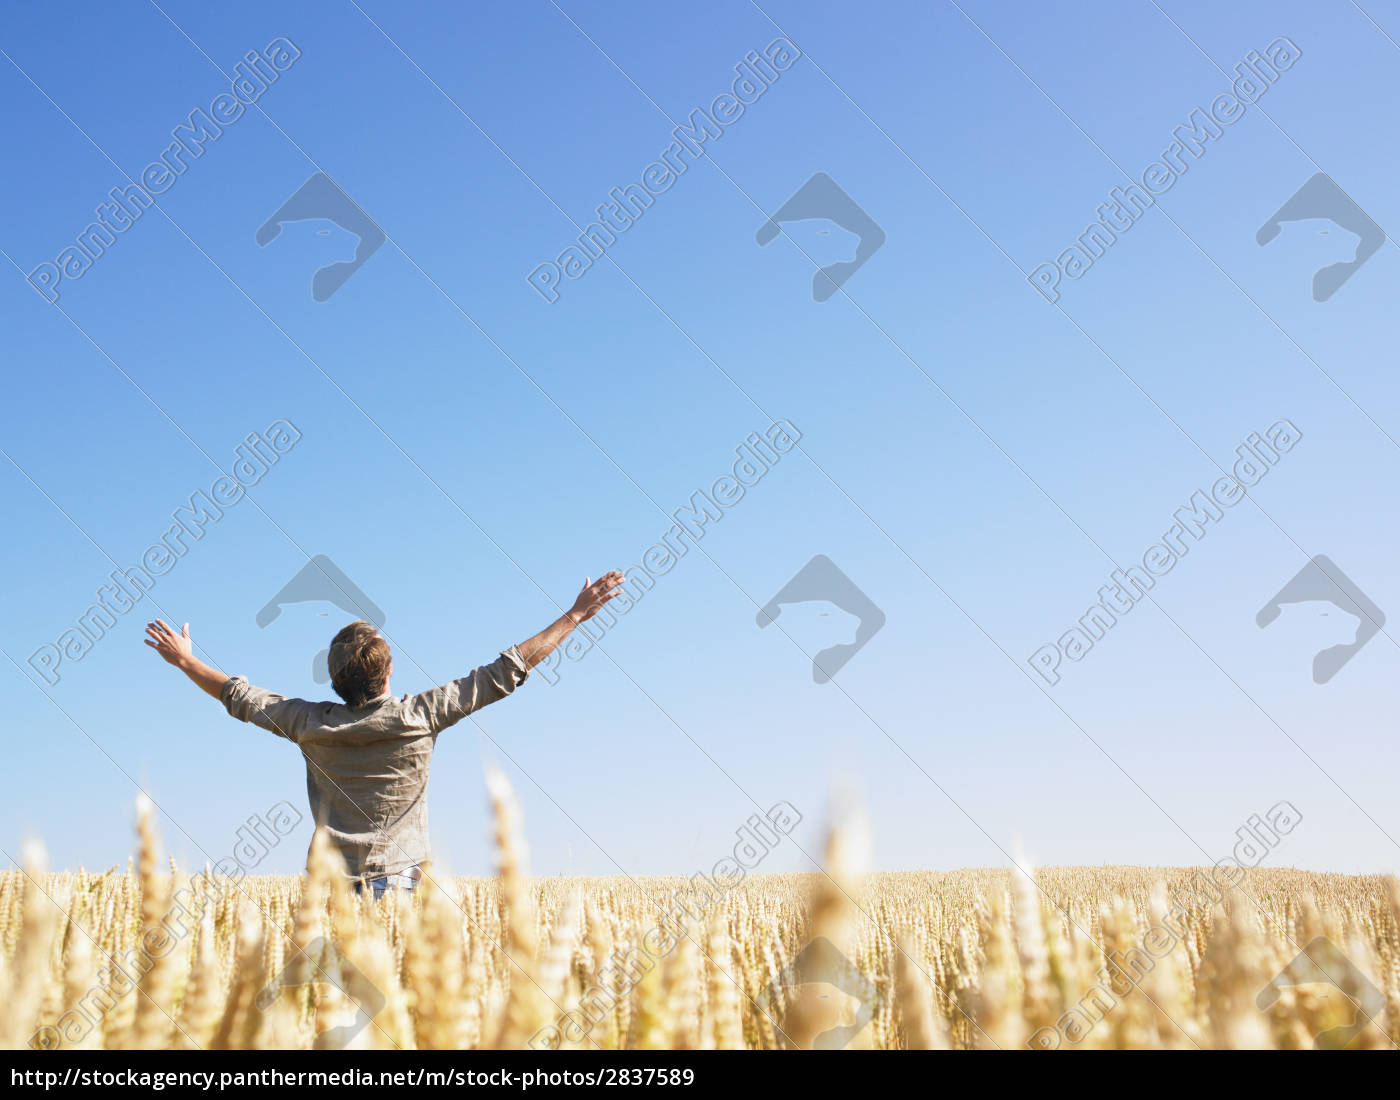 lifestyle, horizon, graphic, male, masculine, agriculture - 2837589